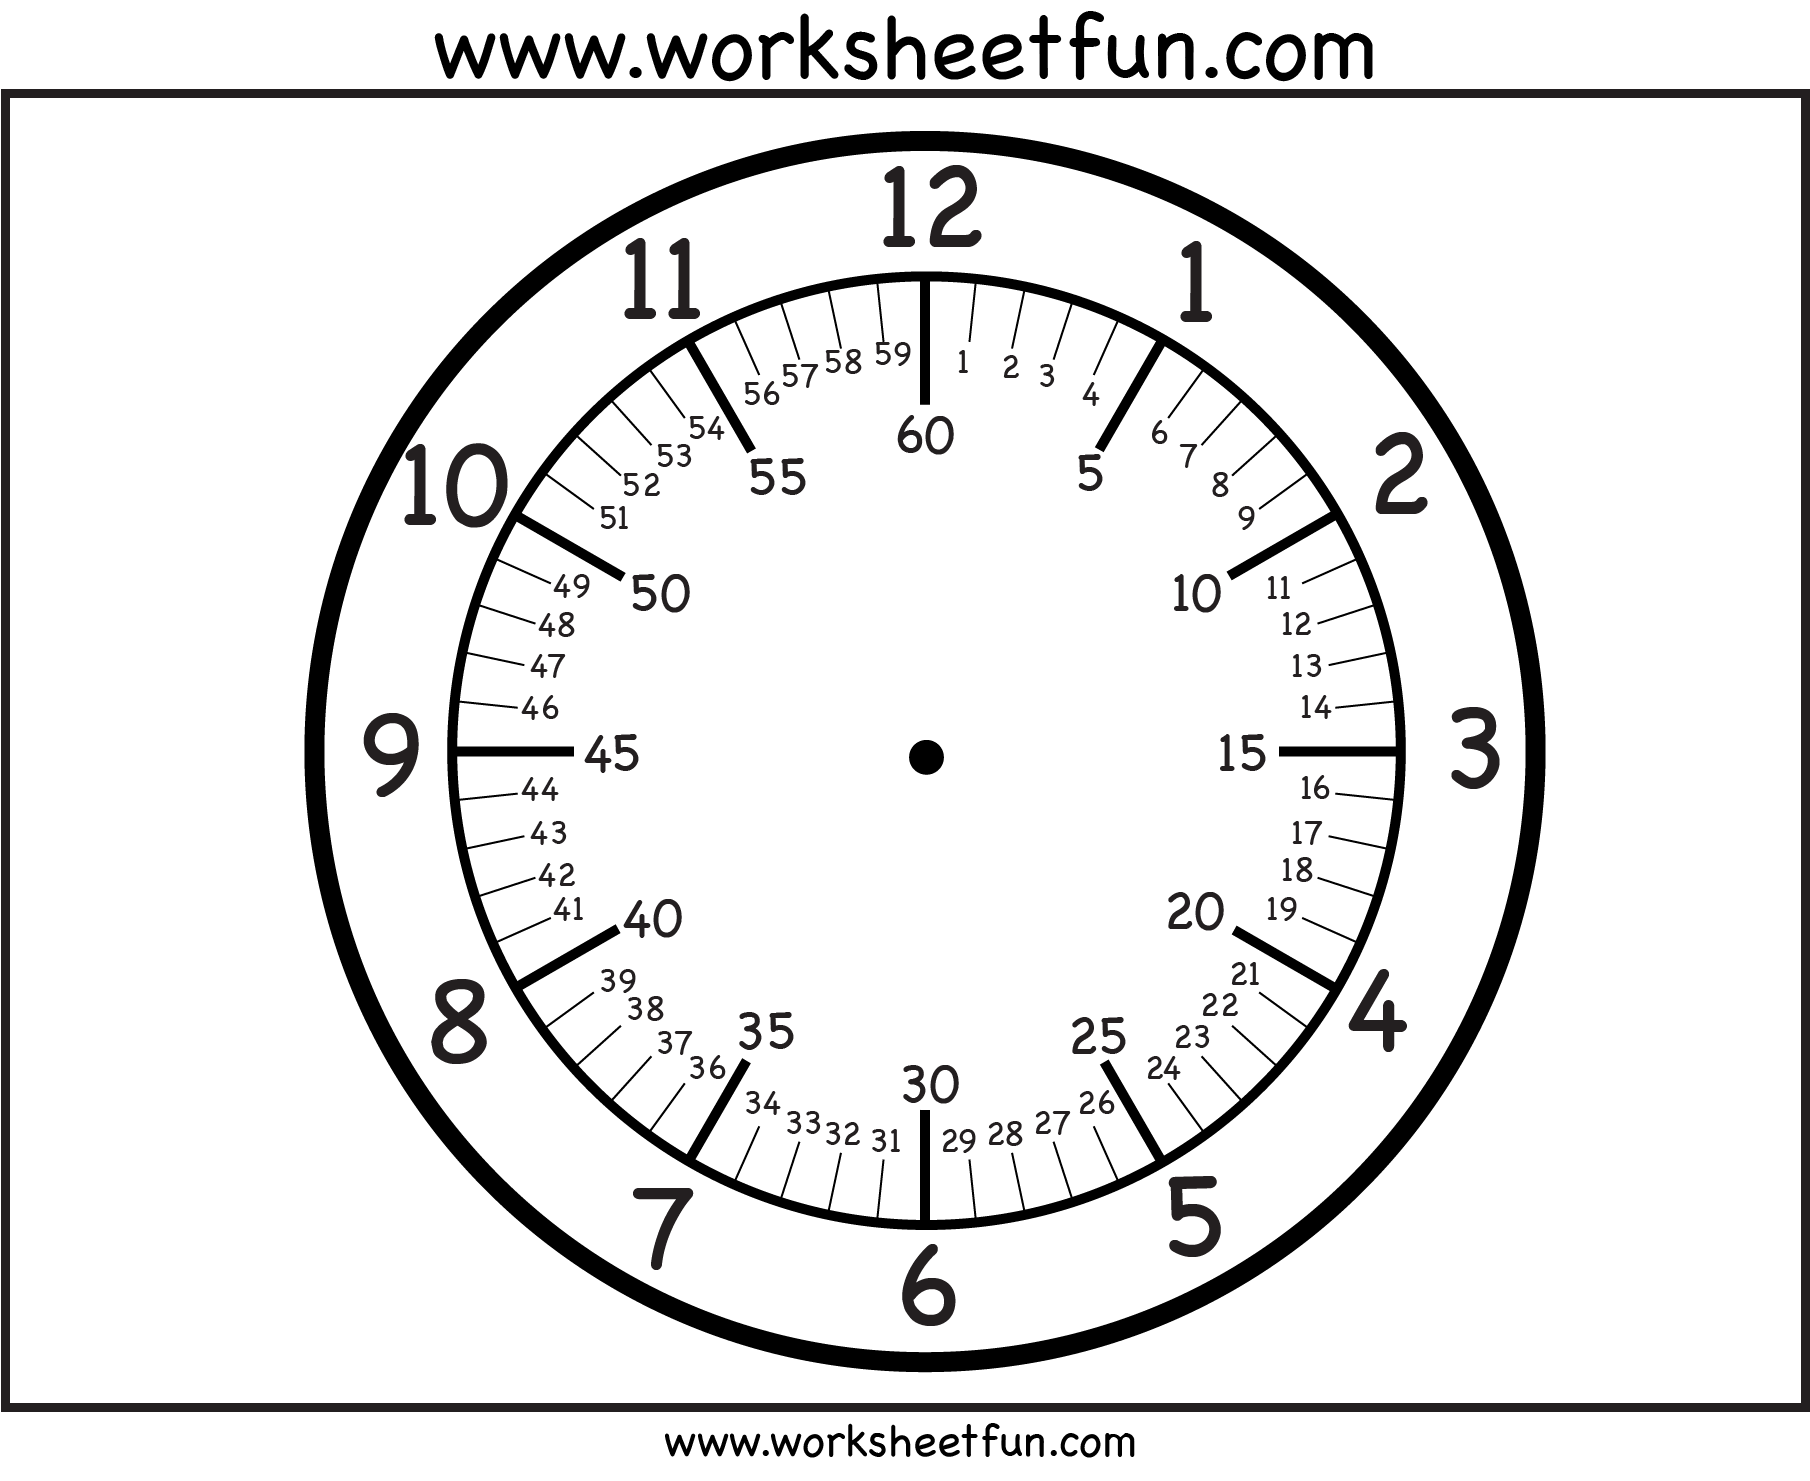 Clock Faces Free Printable Clock Faces With Variations That Include Minutes